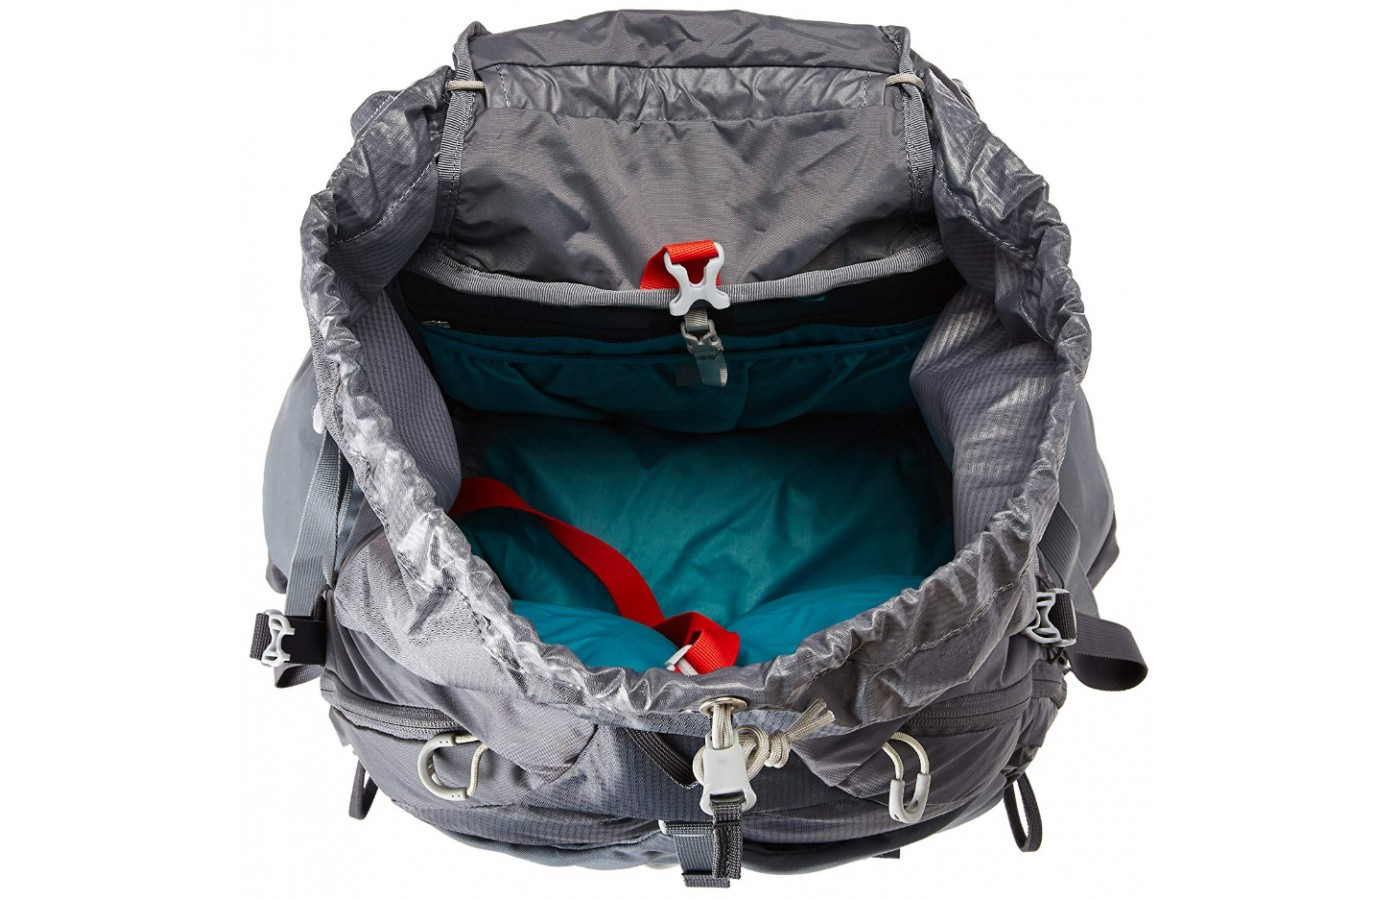 Featuring 12 pockets all together including the large main area, you'll easily be able to organize your carry alongs.